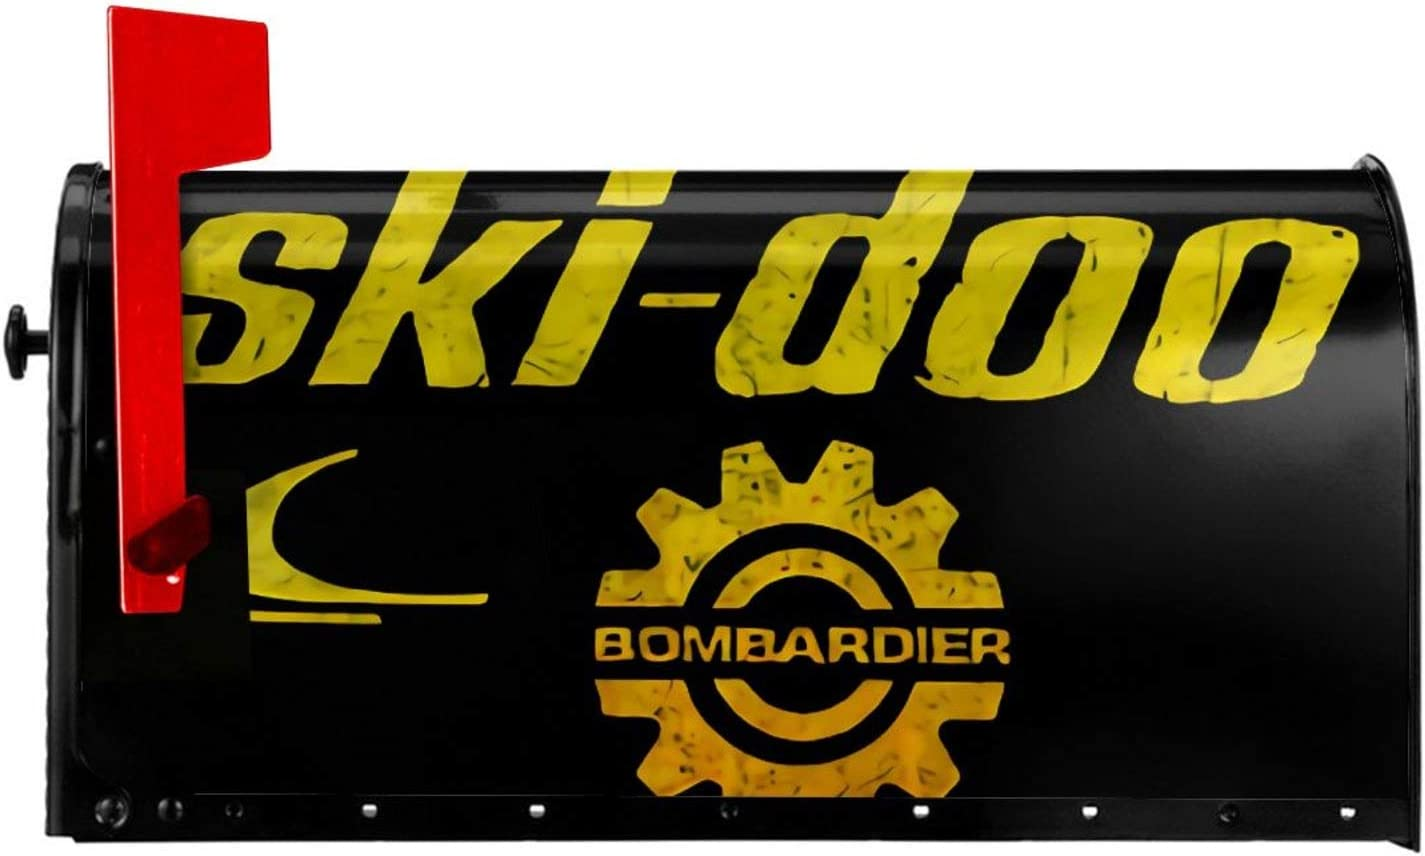 Weerbar Snowmobile from Skidoo Mailbox Cover Sticker Decoration Rainproof and Moistureproof Fashion